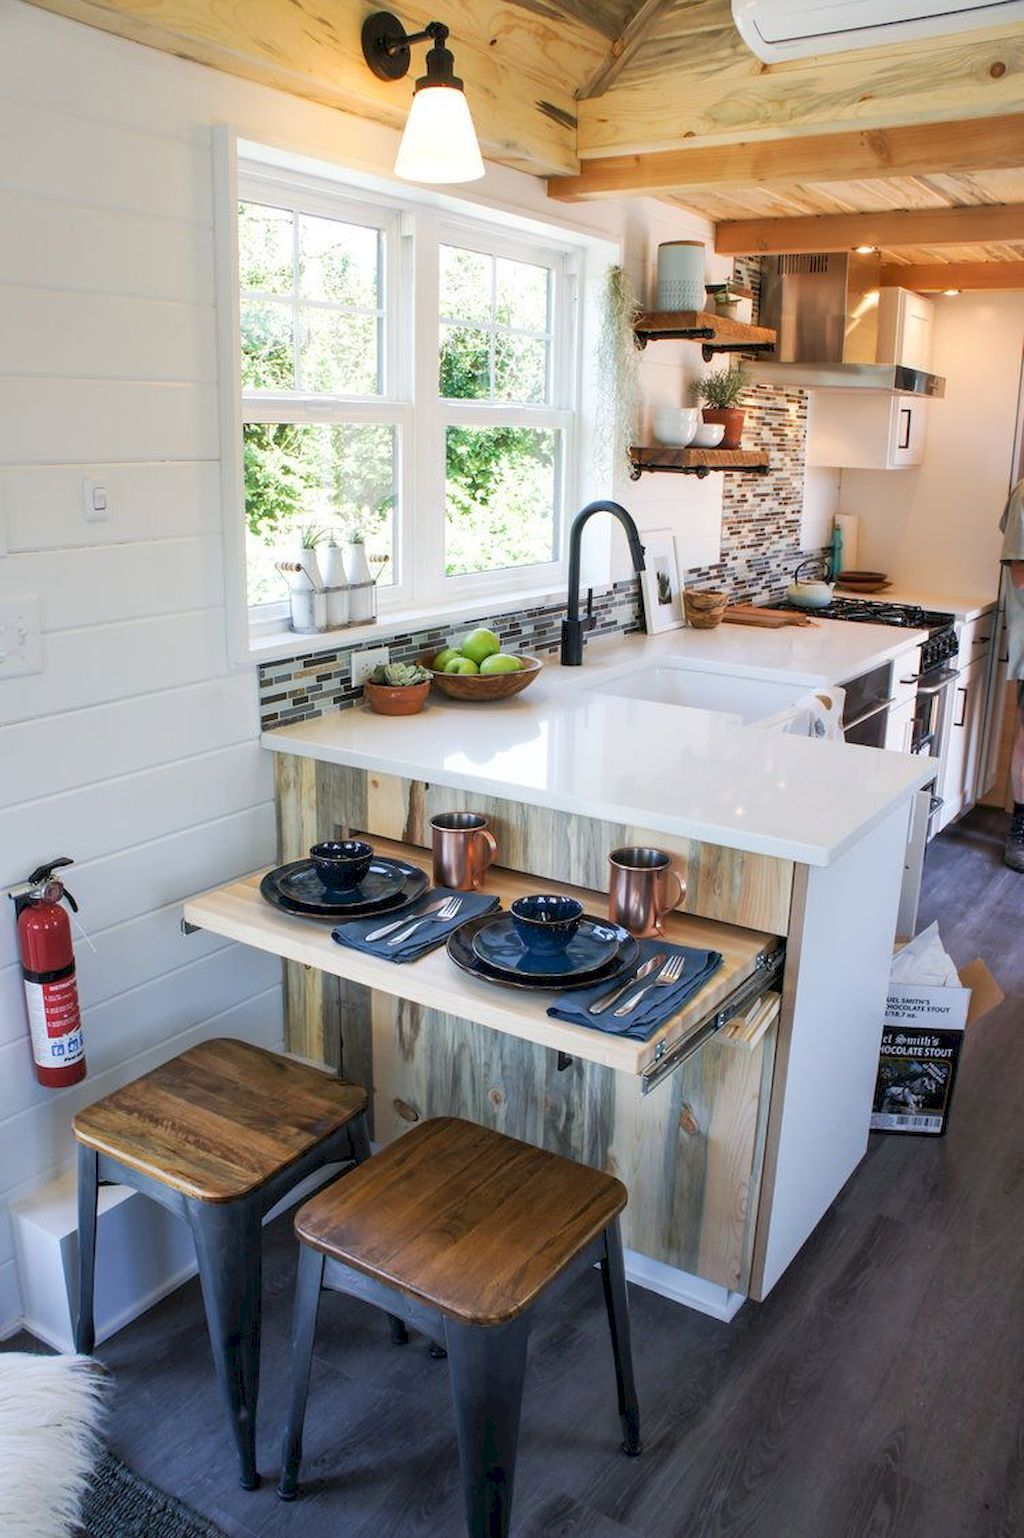 The 11 Tiny House Kitchens Thatll Make You Rethink Big Kitchens